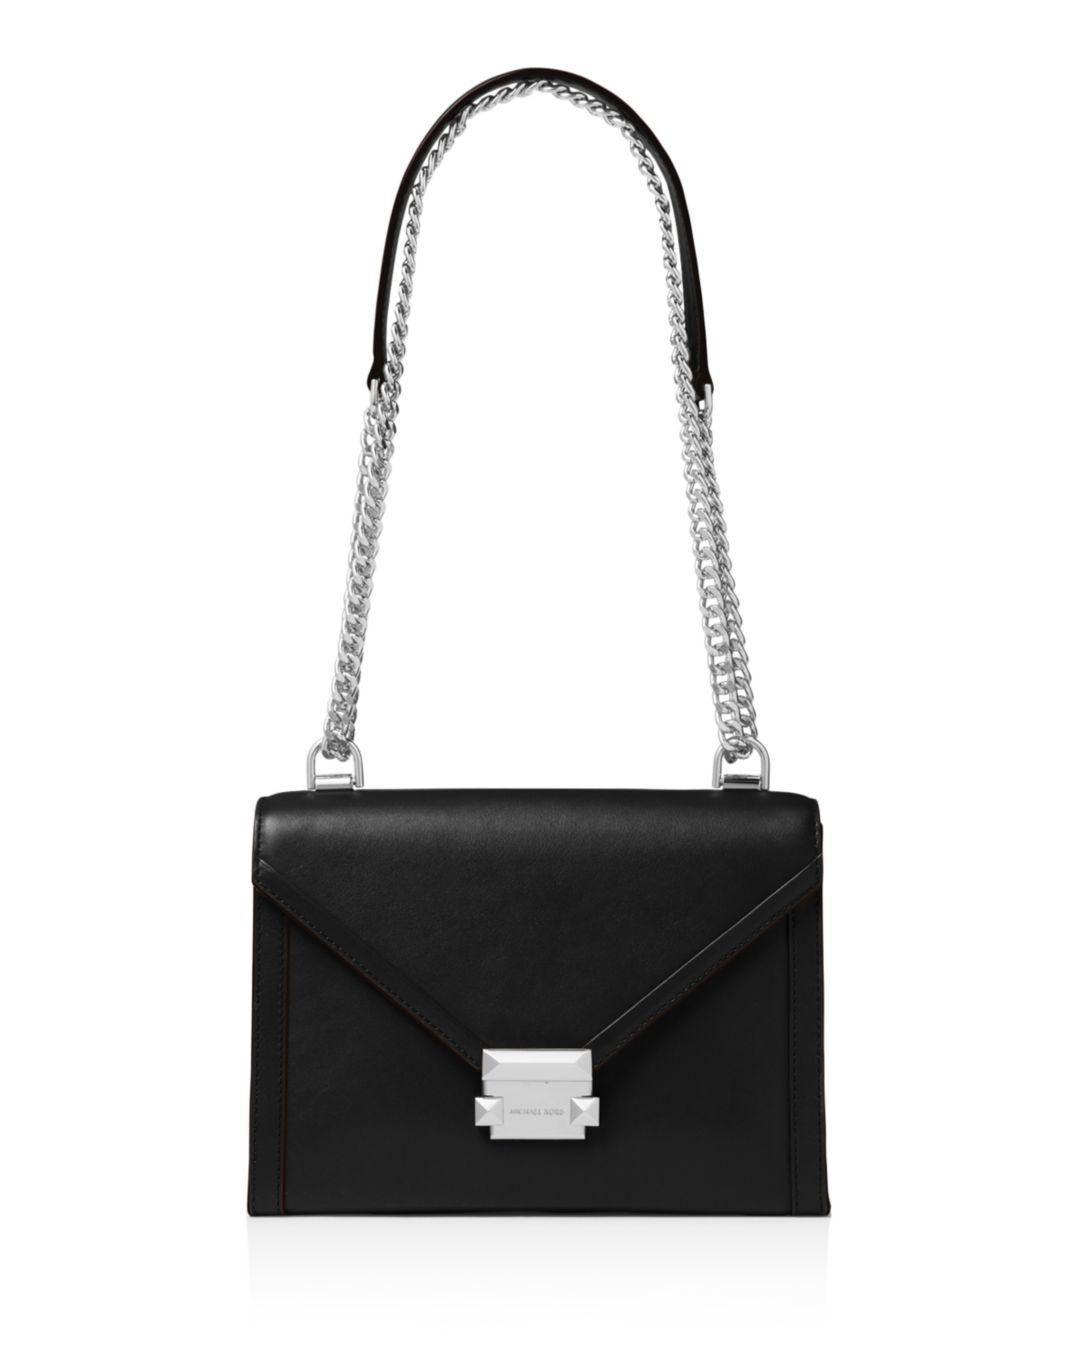 33df90d5f08c MICHAEL Michael Kors Whitney Large Leather Shoulder Bag in Black - Lyst